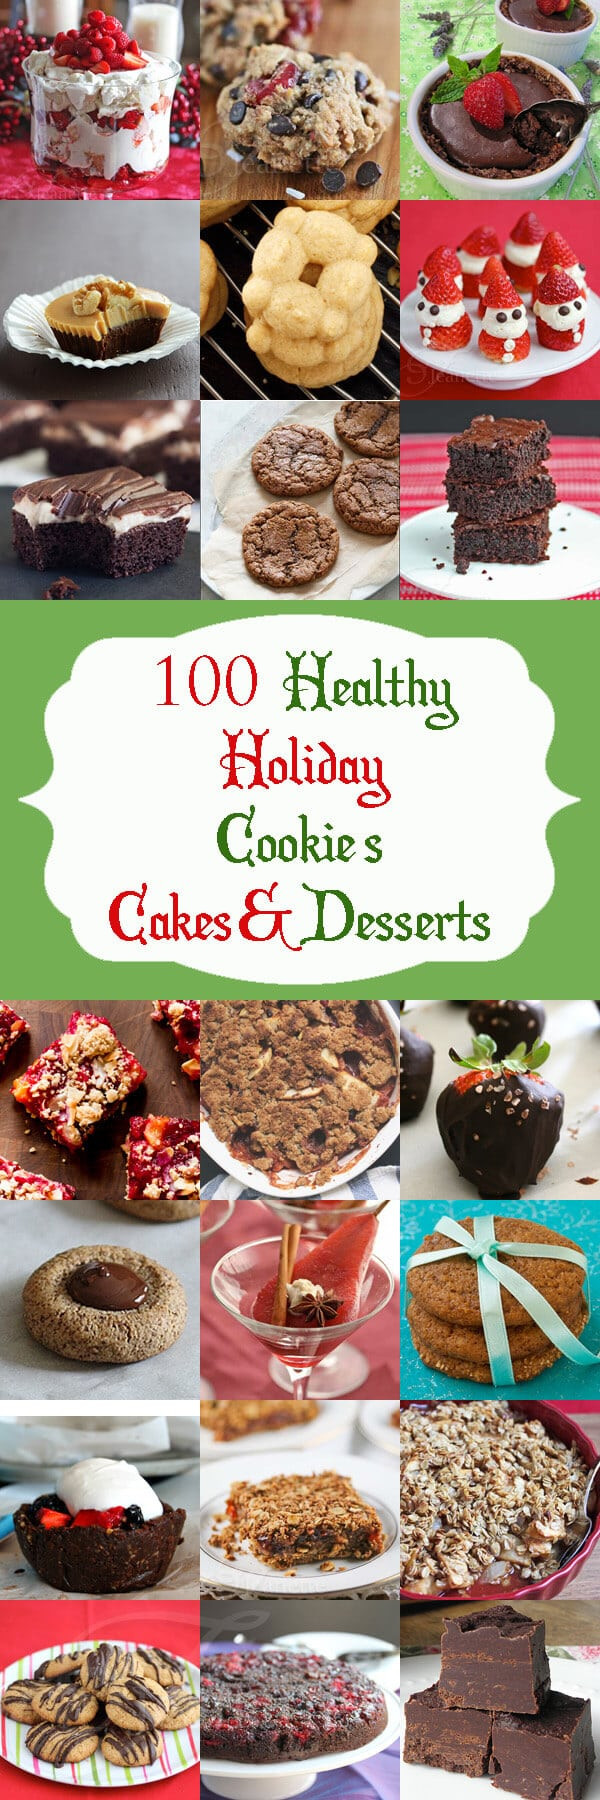 Healthy Christmas Desserts  100 Healthy Christmas and Holiday Dessert Recipes